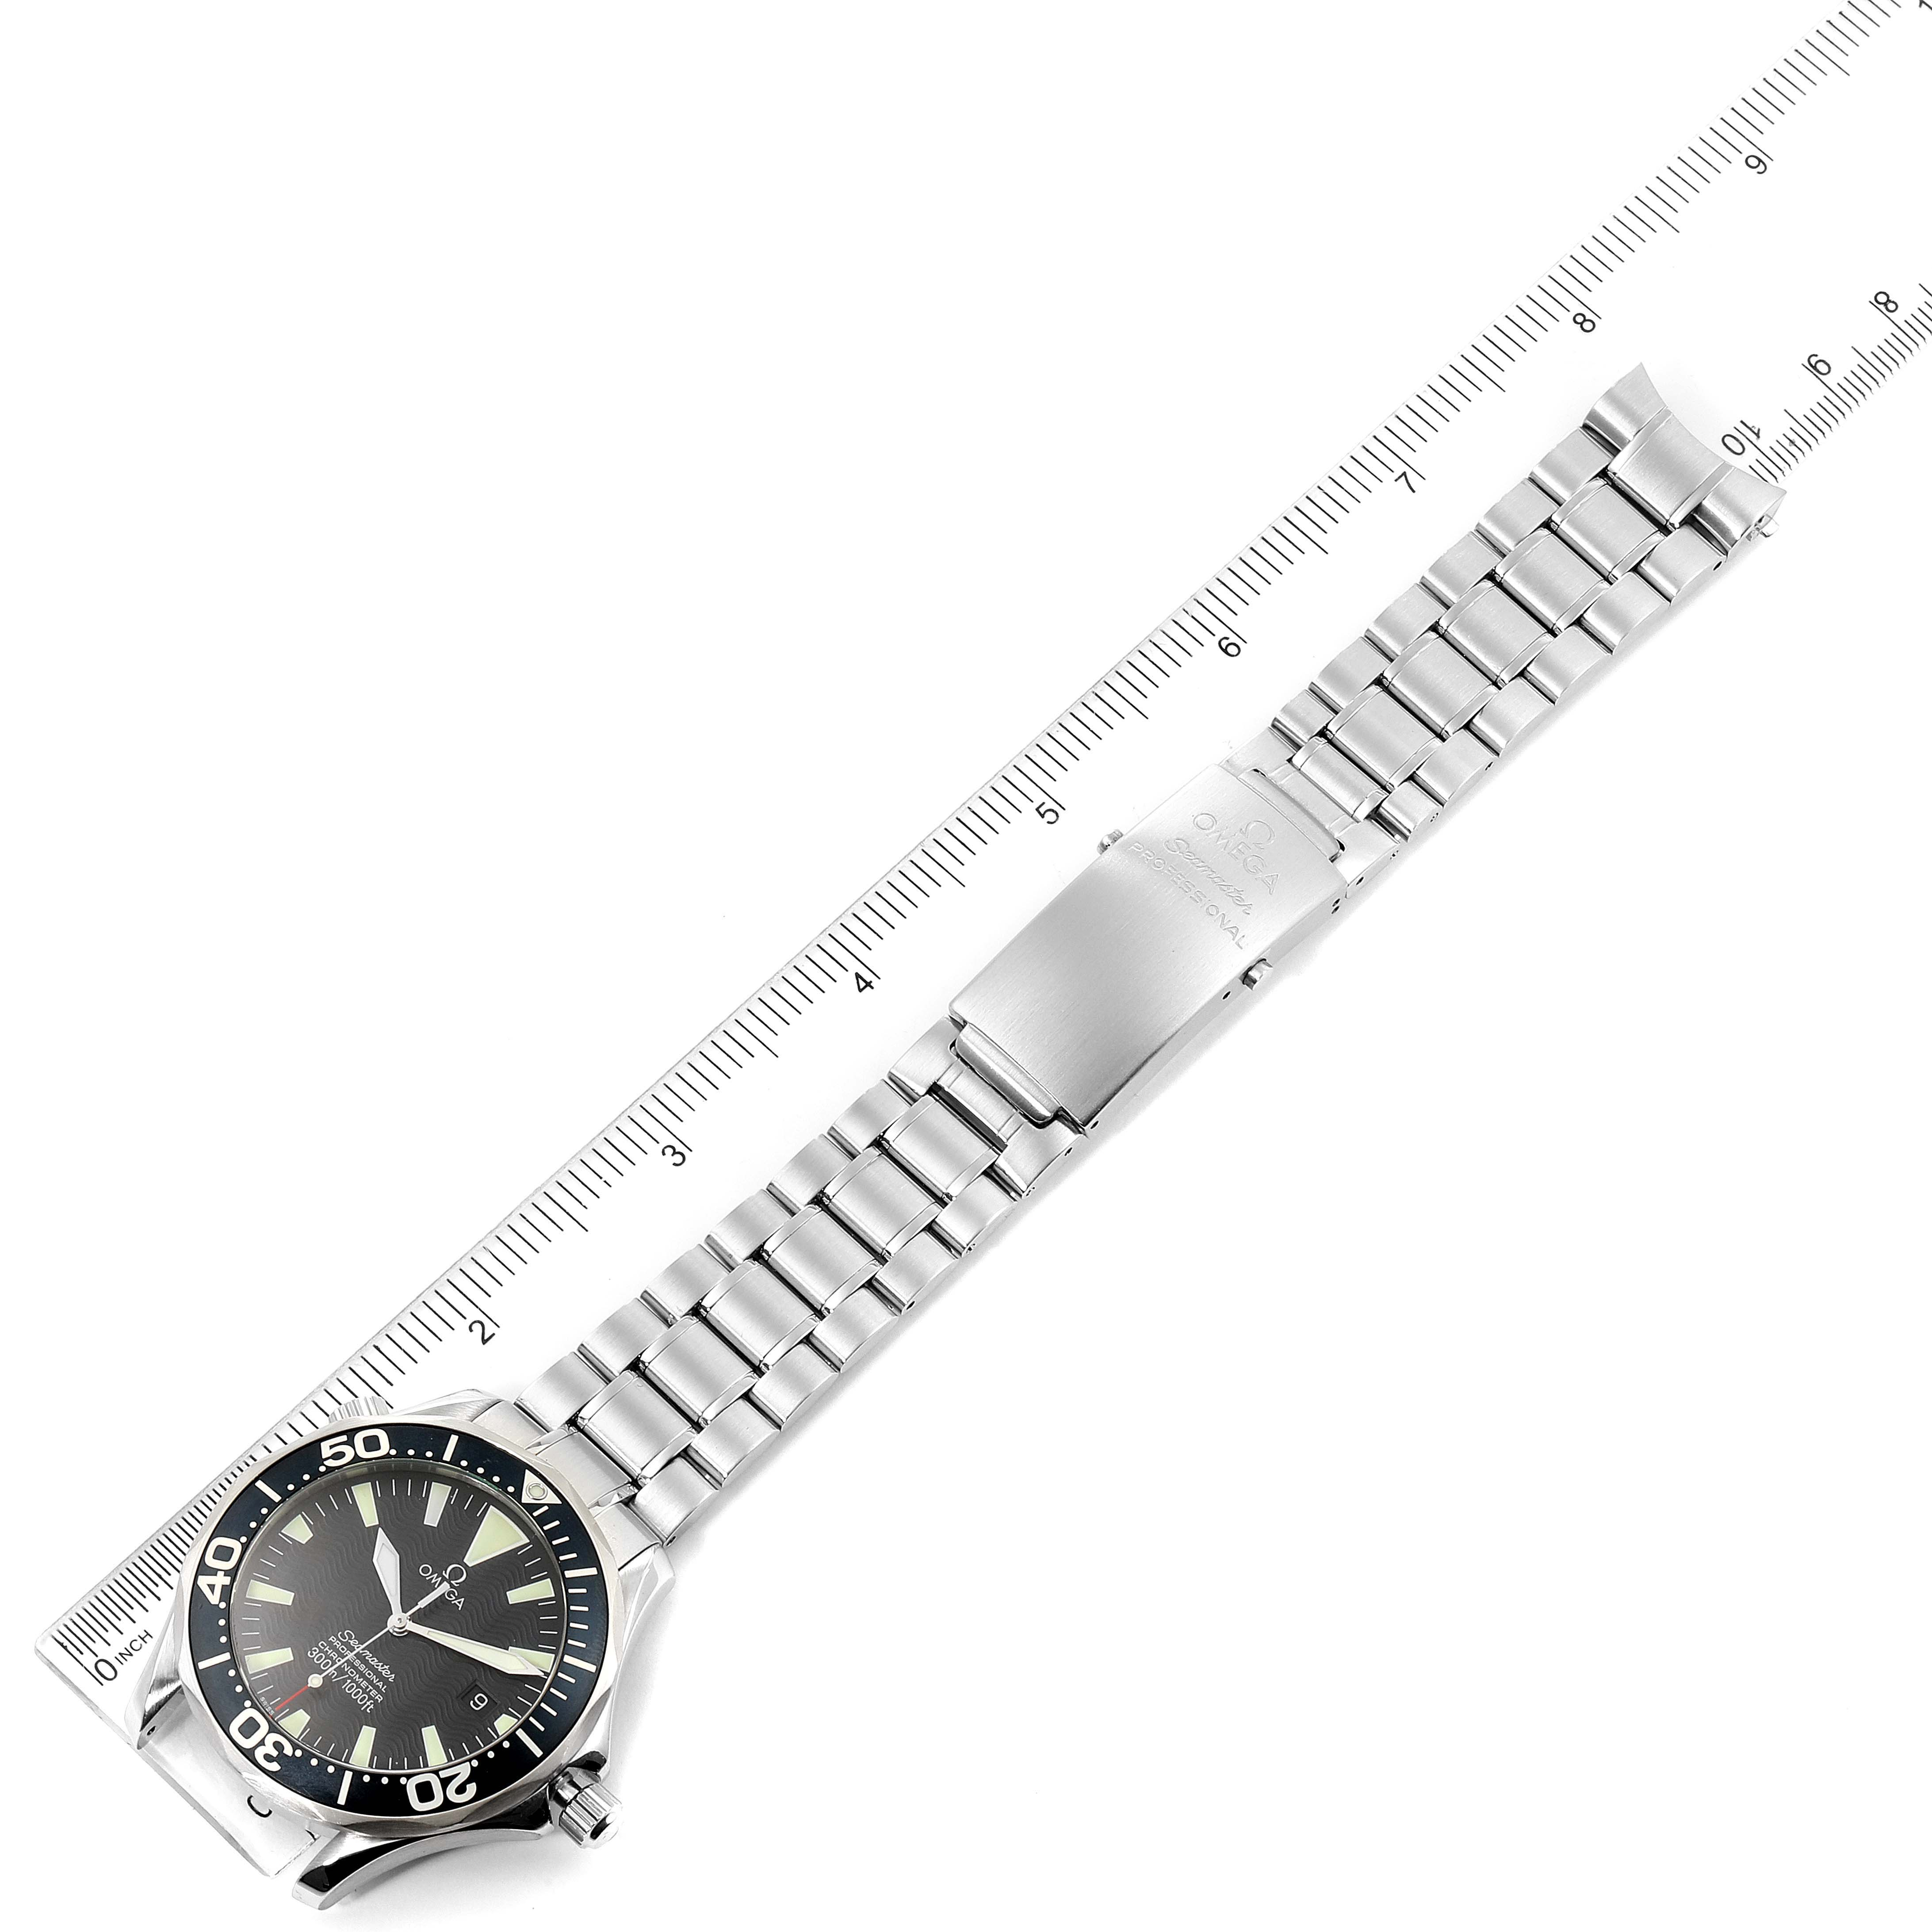 Omega Seamaster 41 300M Black Dial Mens Watch 2254.50.00 Card SwissWatchExpo